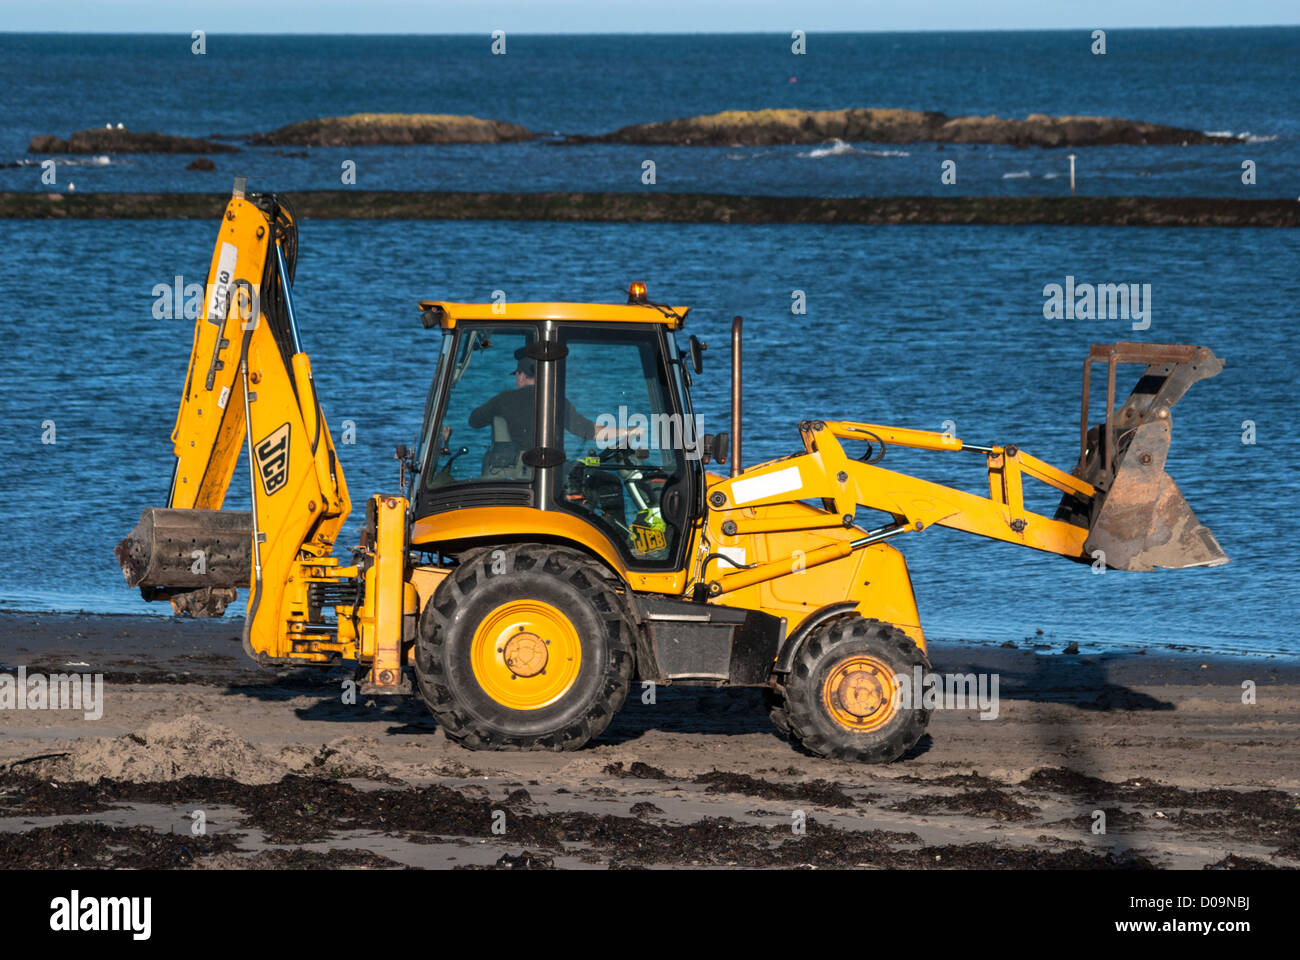 JCB at work on Millisle Beach Stock Photo